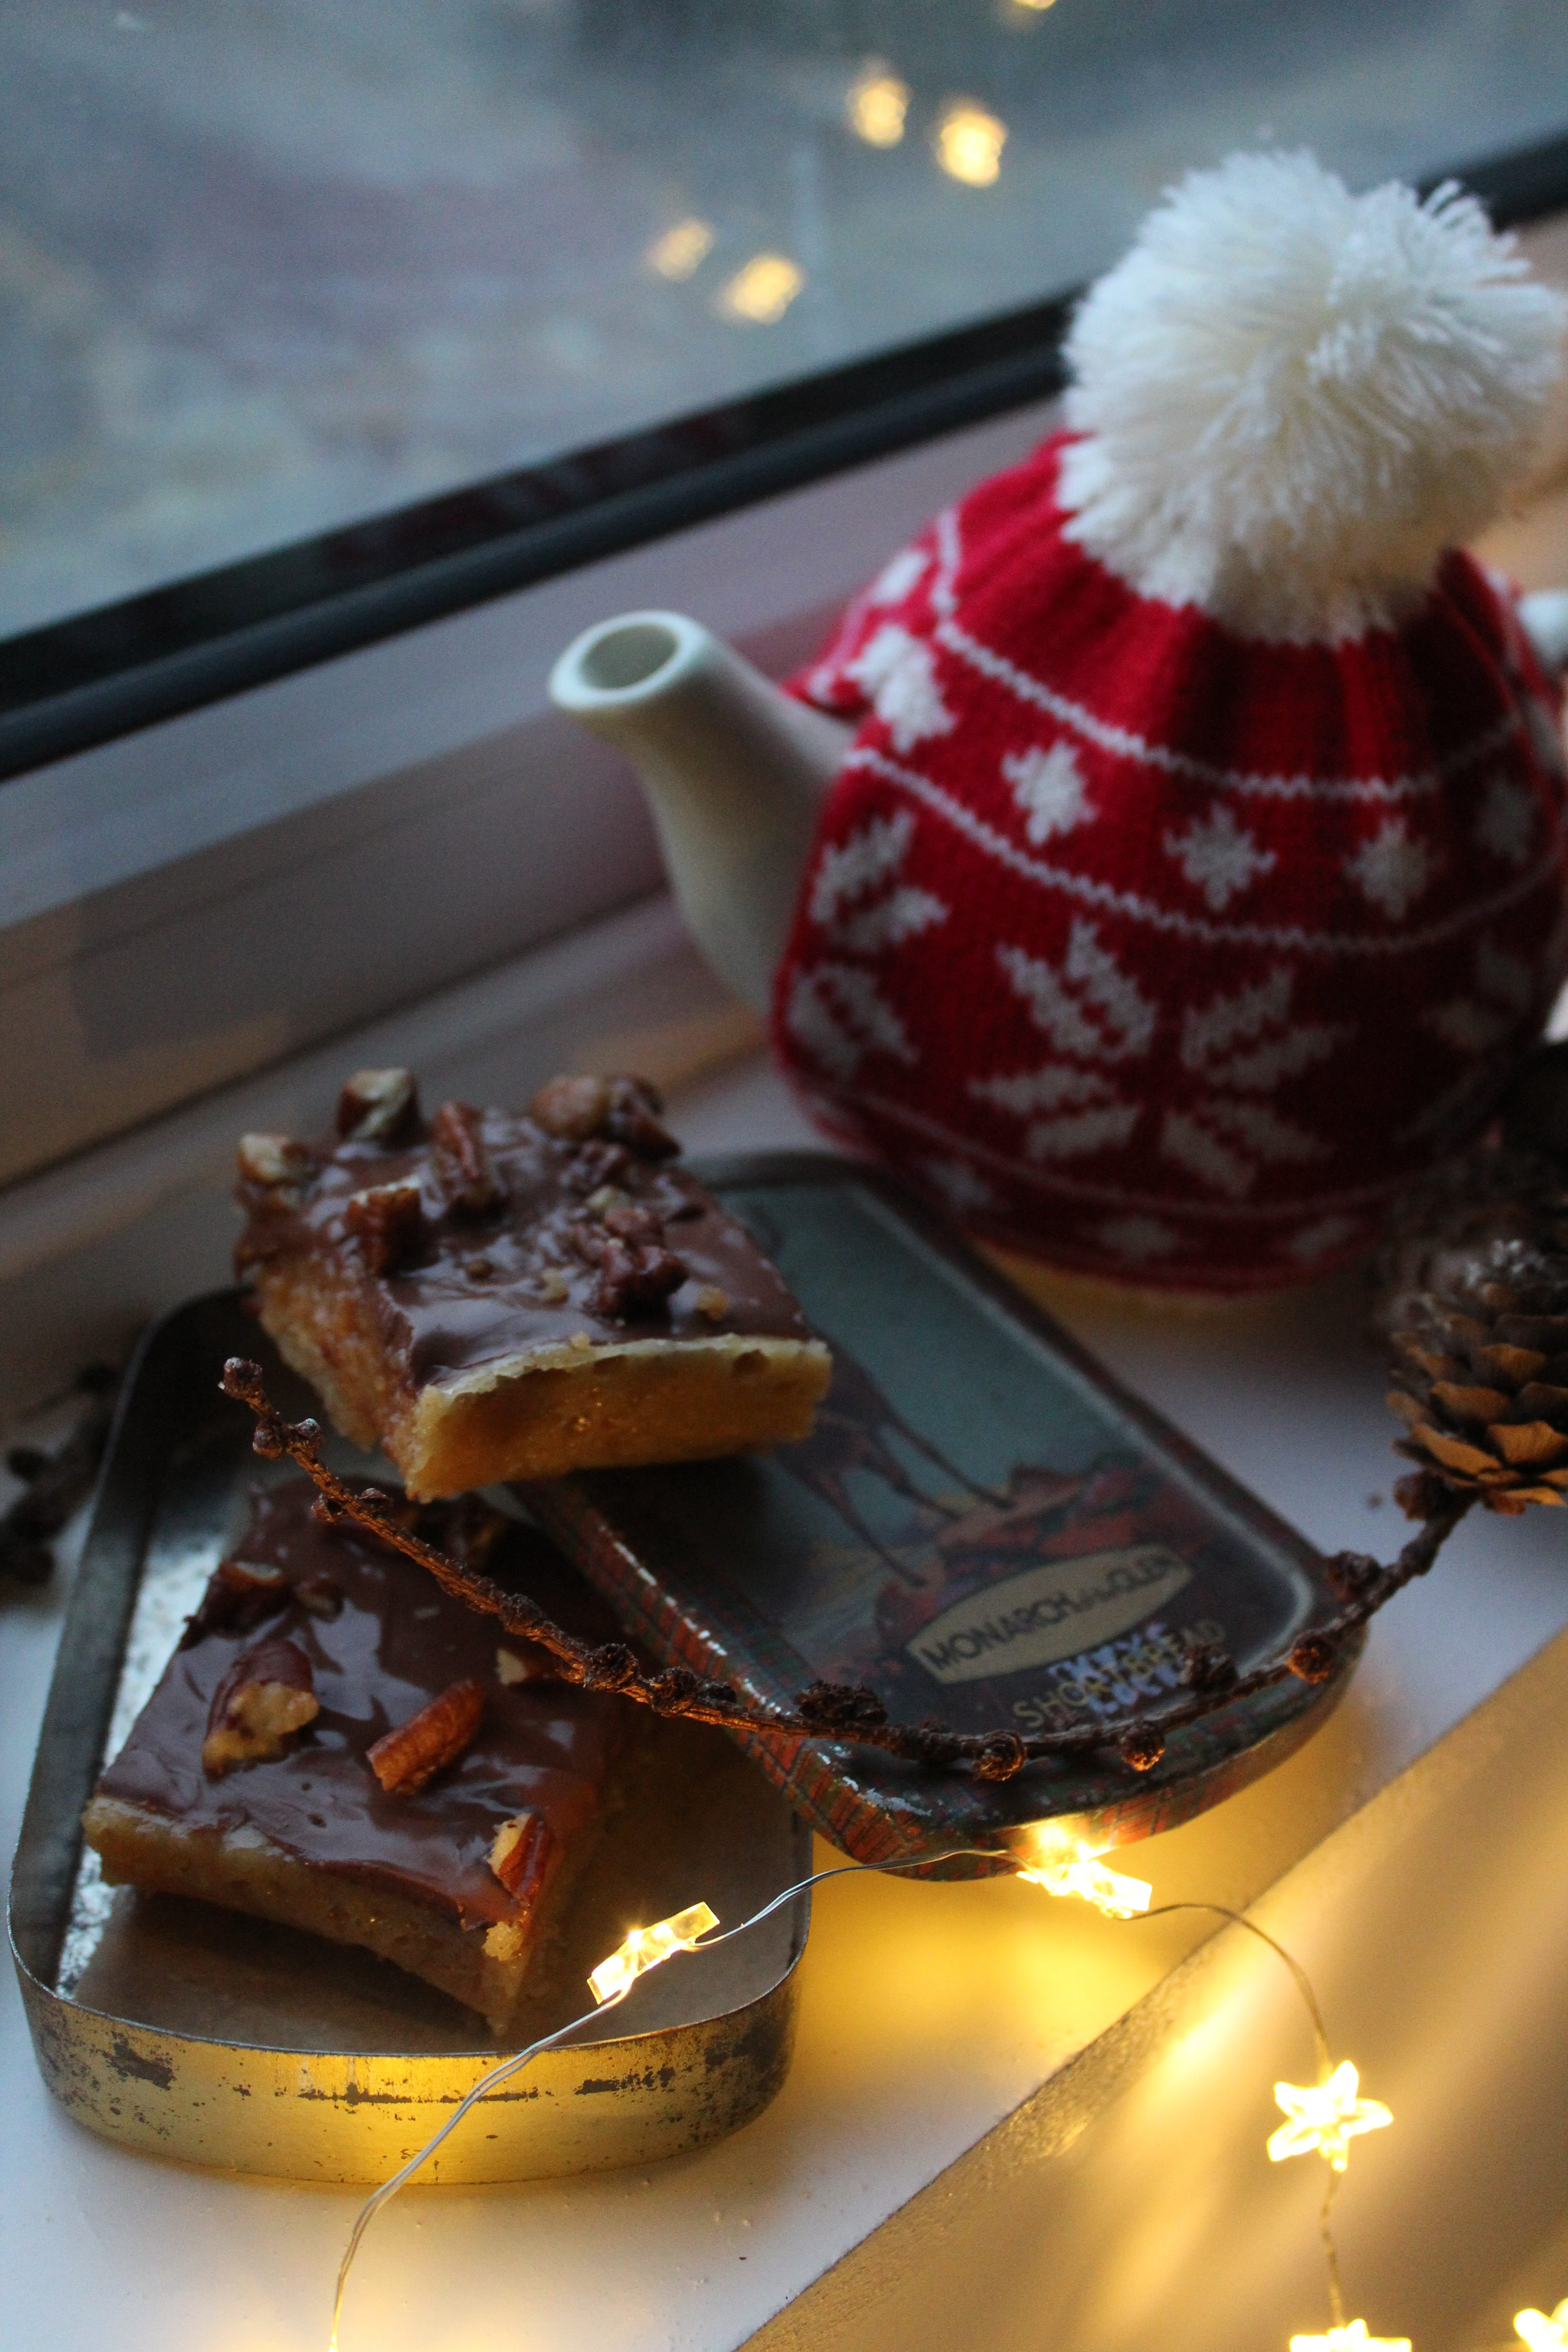 Spice and nut millionaire's shortbread